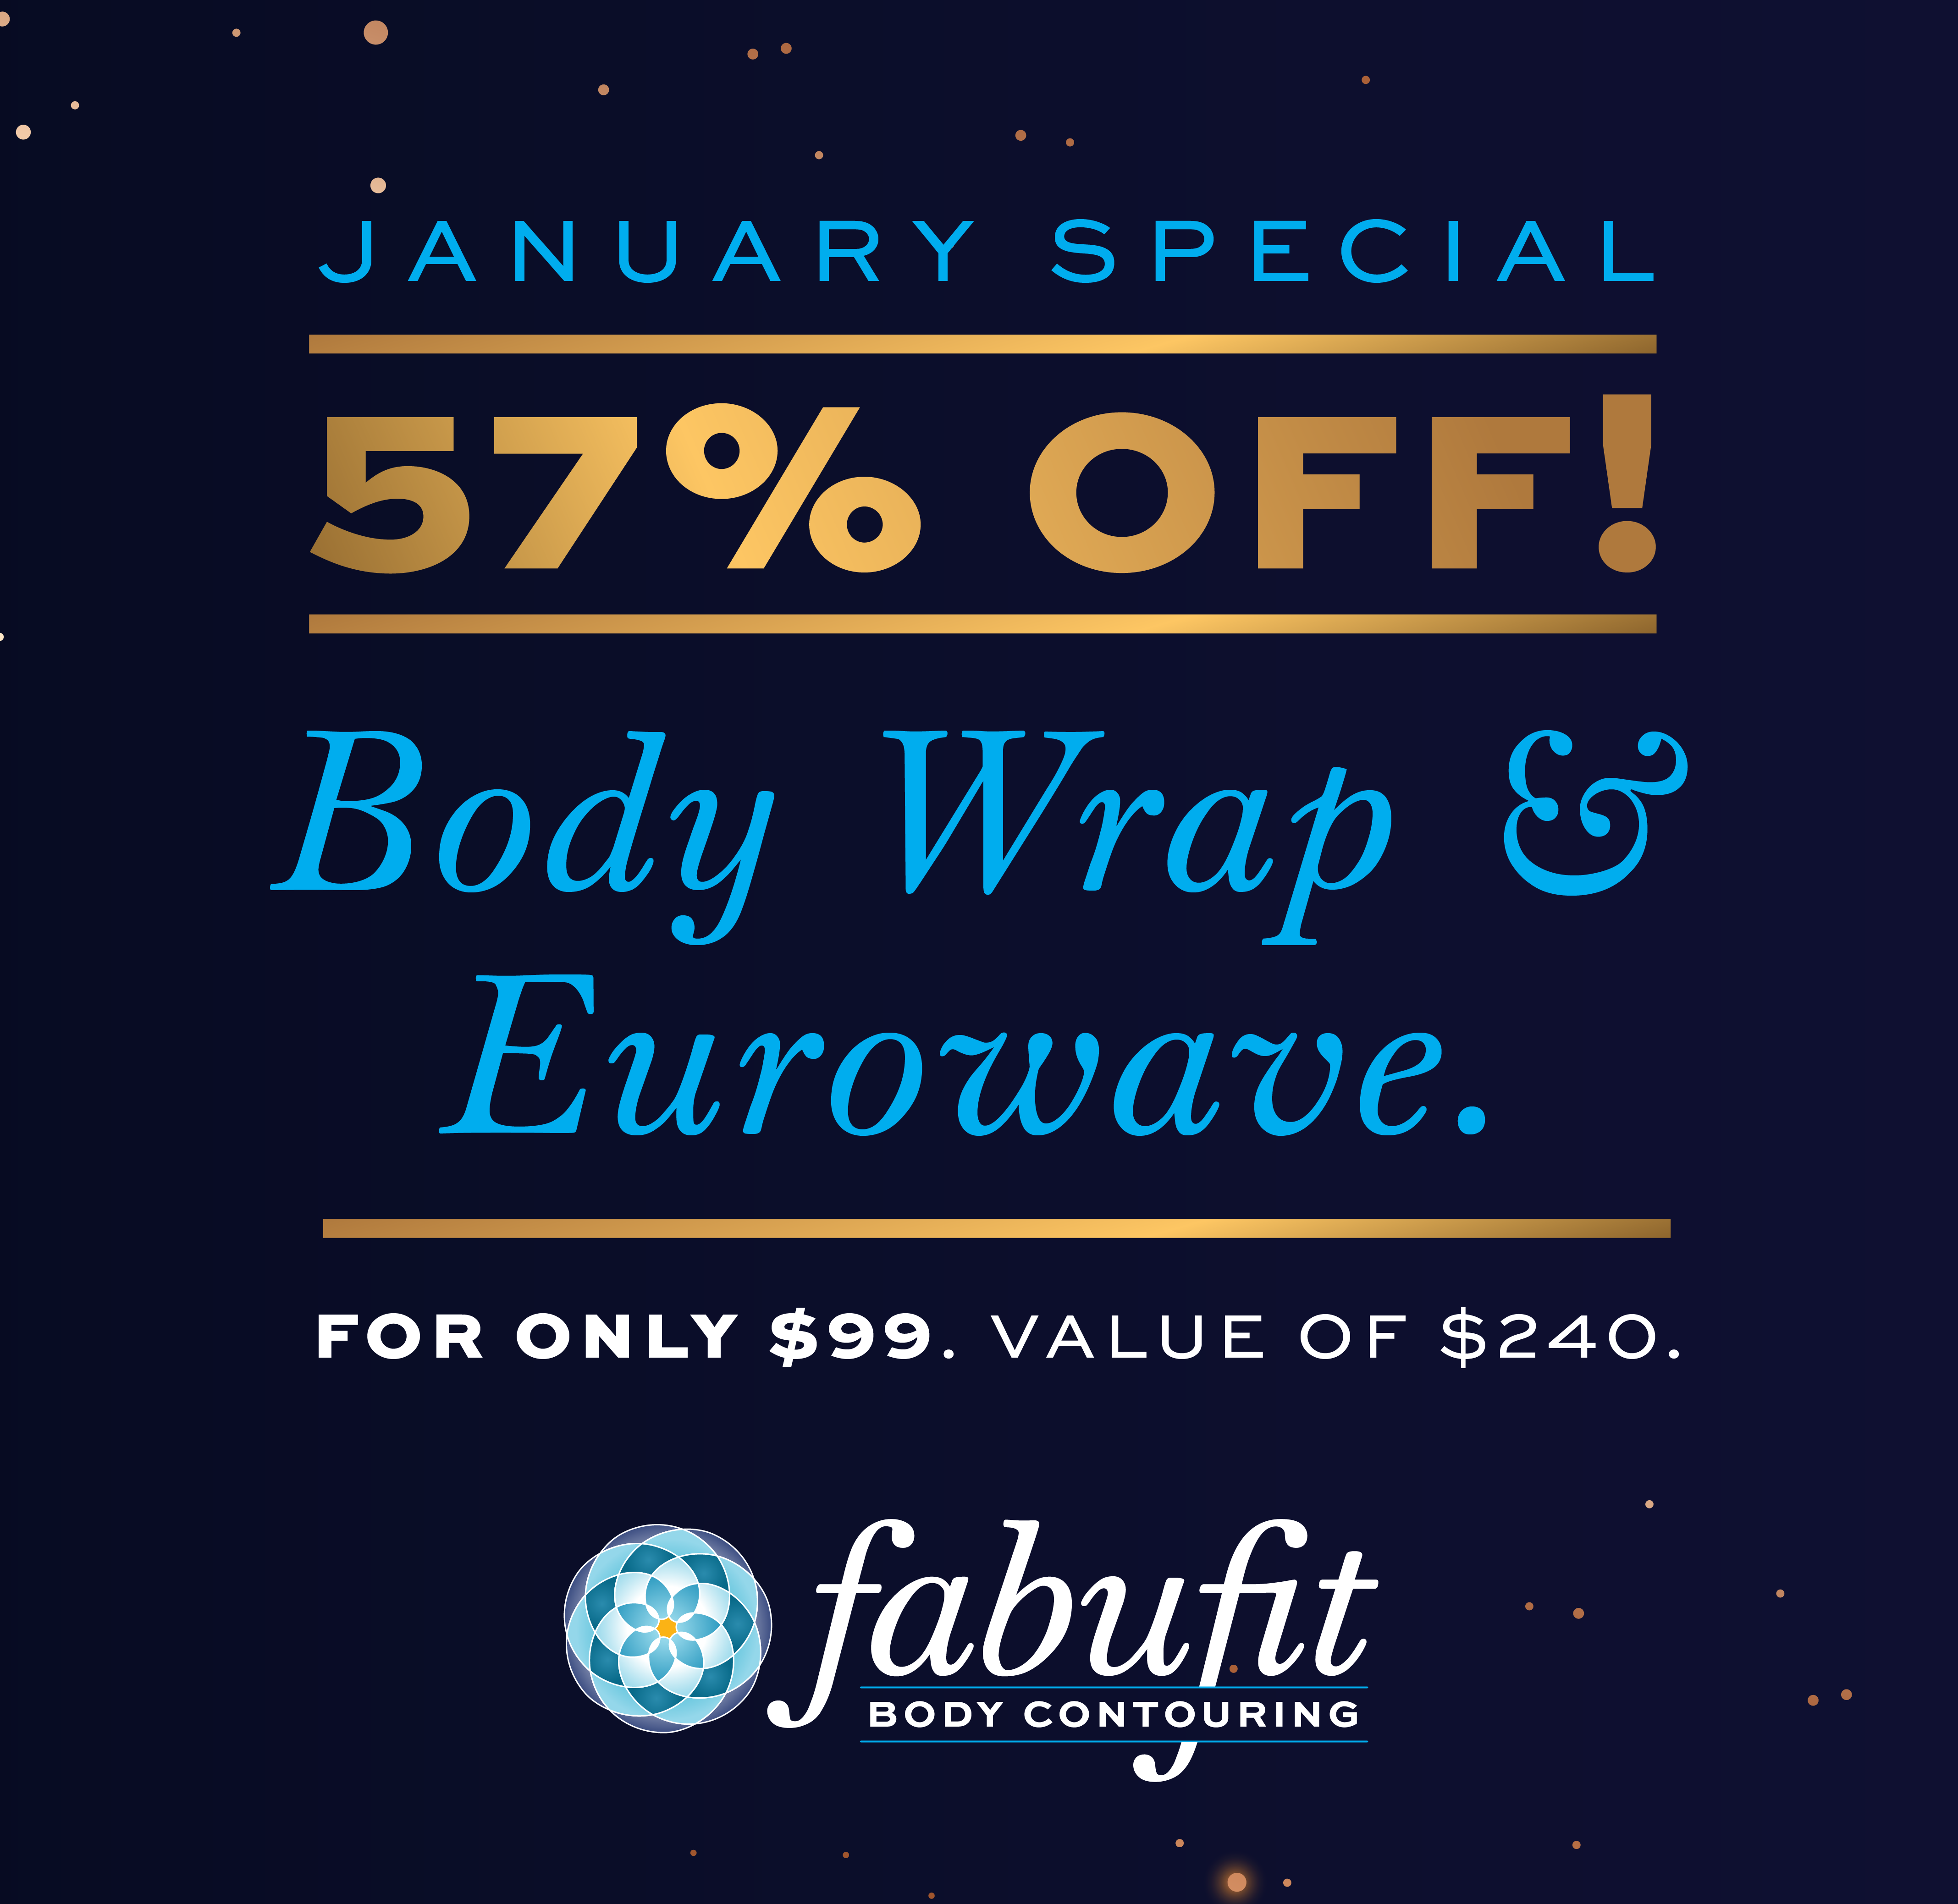 January Special on Eurowave & Bodywraps!